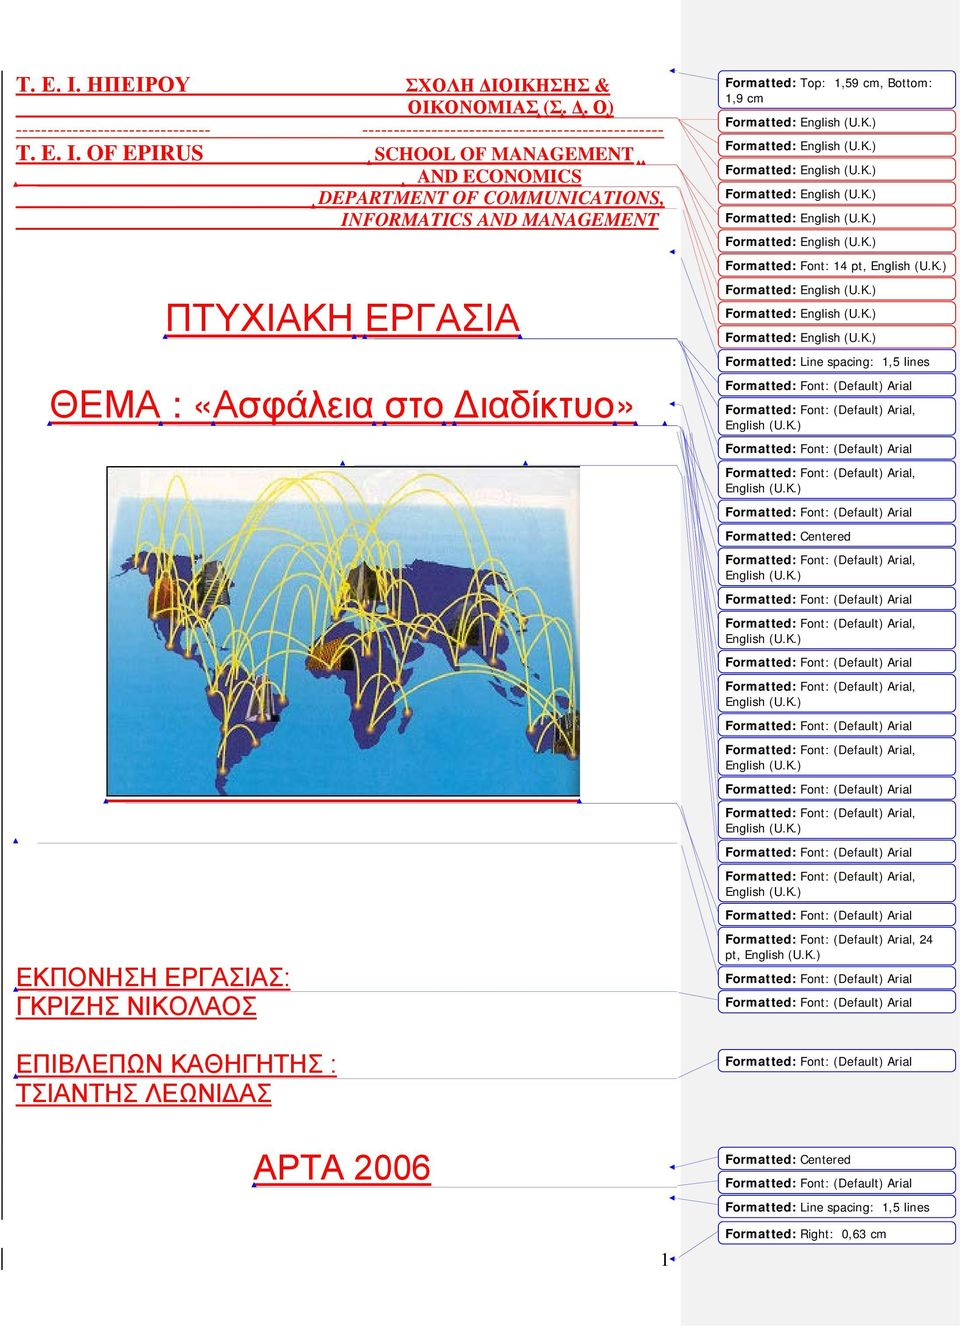 ΚΑΘΗΓΗΤΗΣ : ΤΣΙΑΝΤΗΣ ΛΕΩΝΙΔΑΣ ΑΡΤΑ 2006 1 Formatted: Top: 1,59 cm, Bottom: 1,9 cm Formatted: English (U.K.) Formatted: English (U.K.) Formatted: English (U.K.) Formatted: English (U.K.) Formatted: English (U.K.) Formatted: English (U.K.) Formatted: Font: 14 pt, English (U.